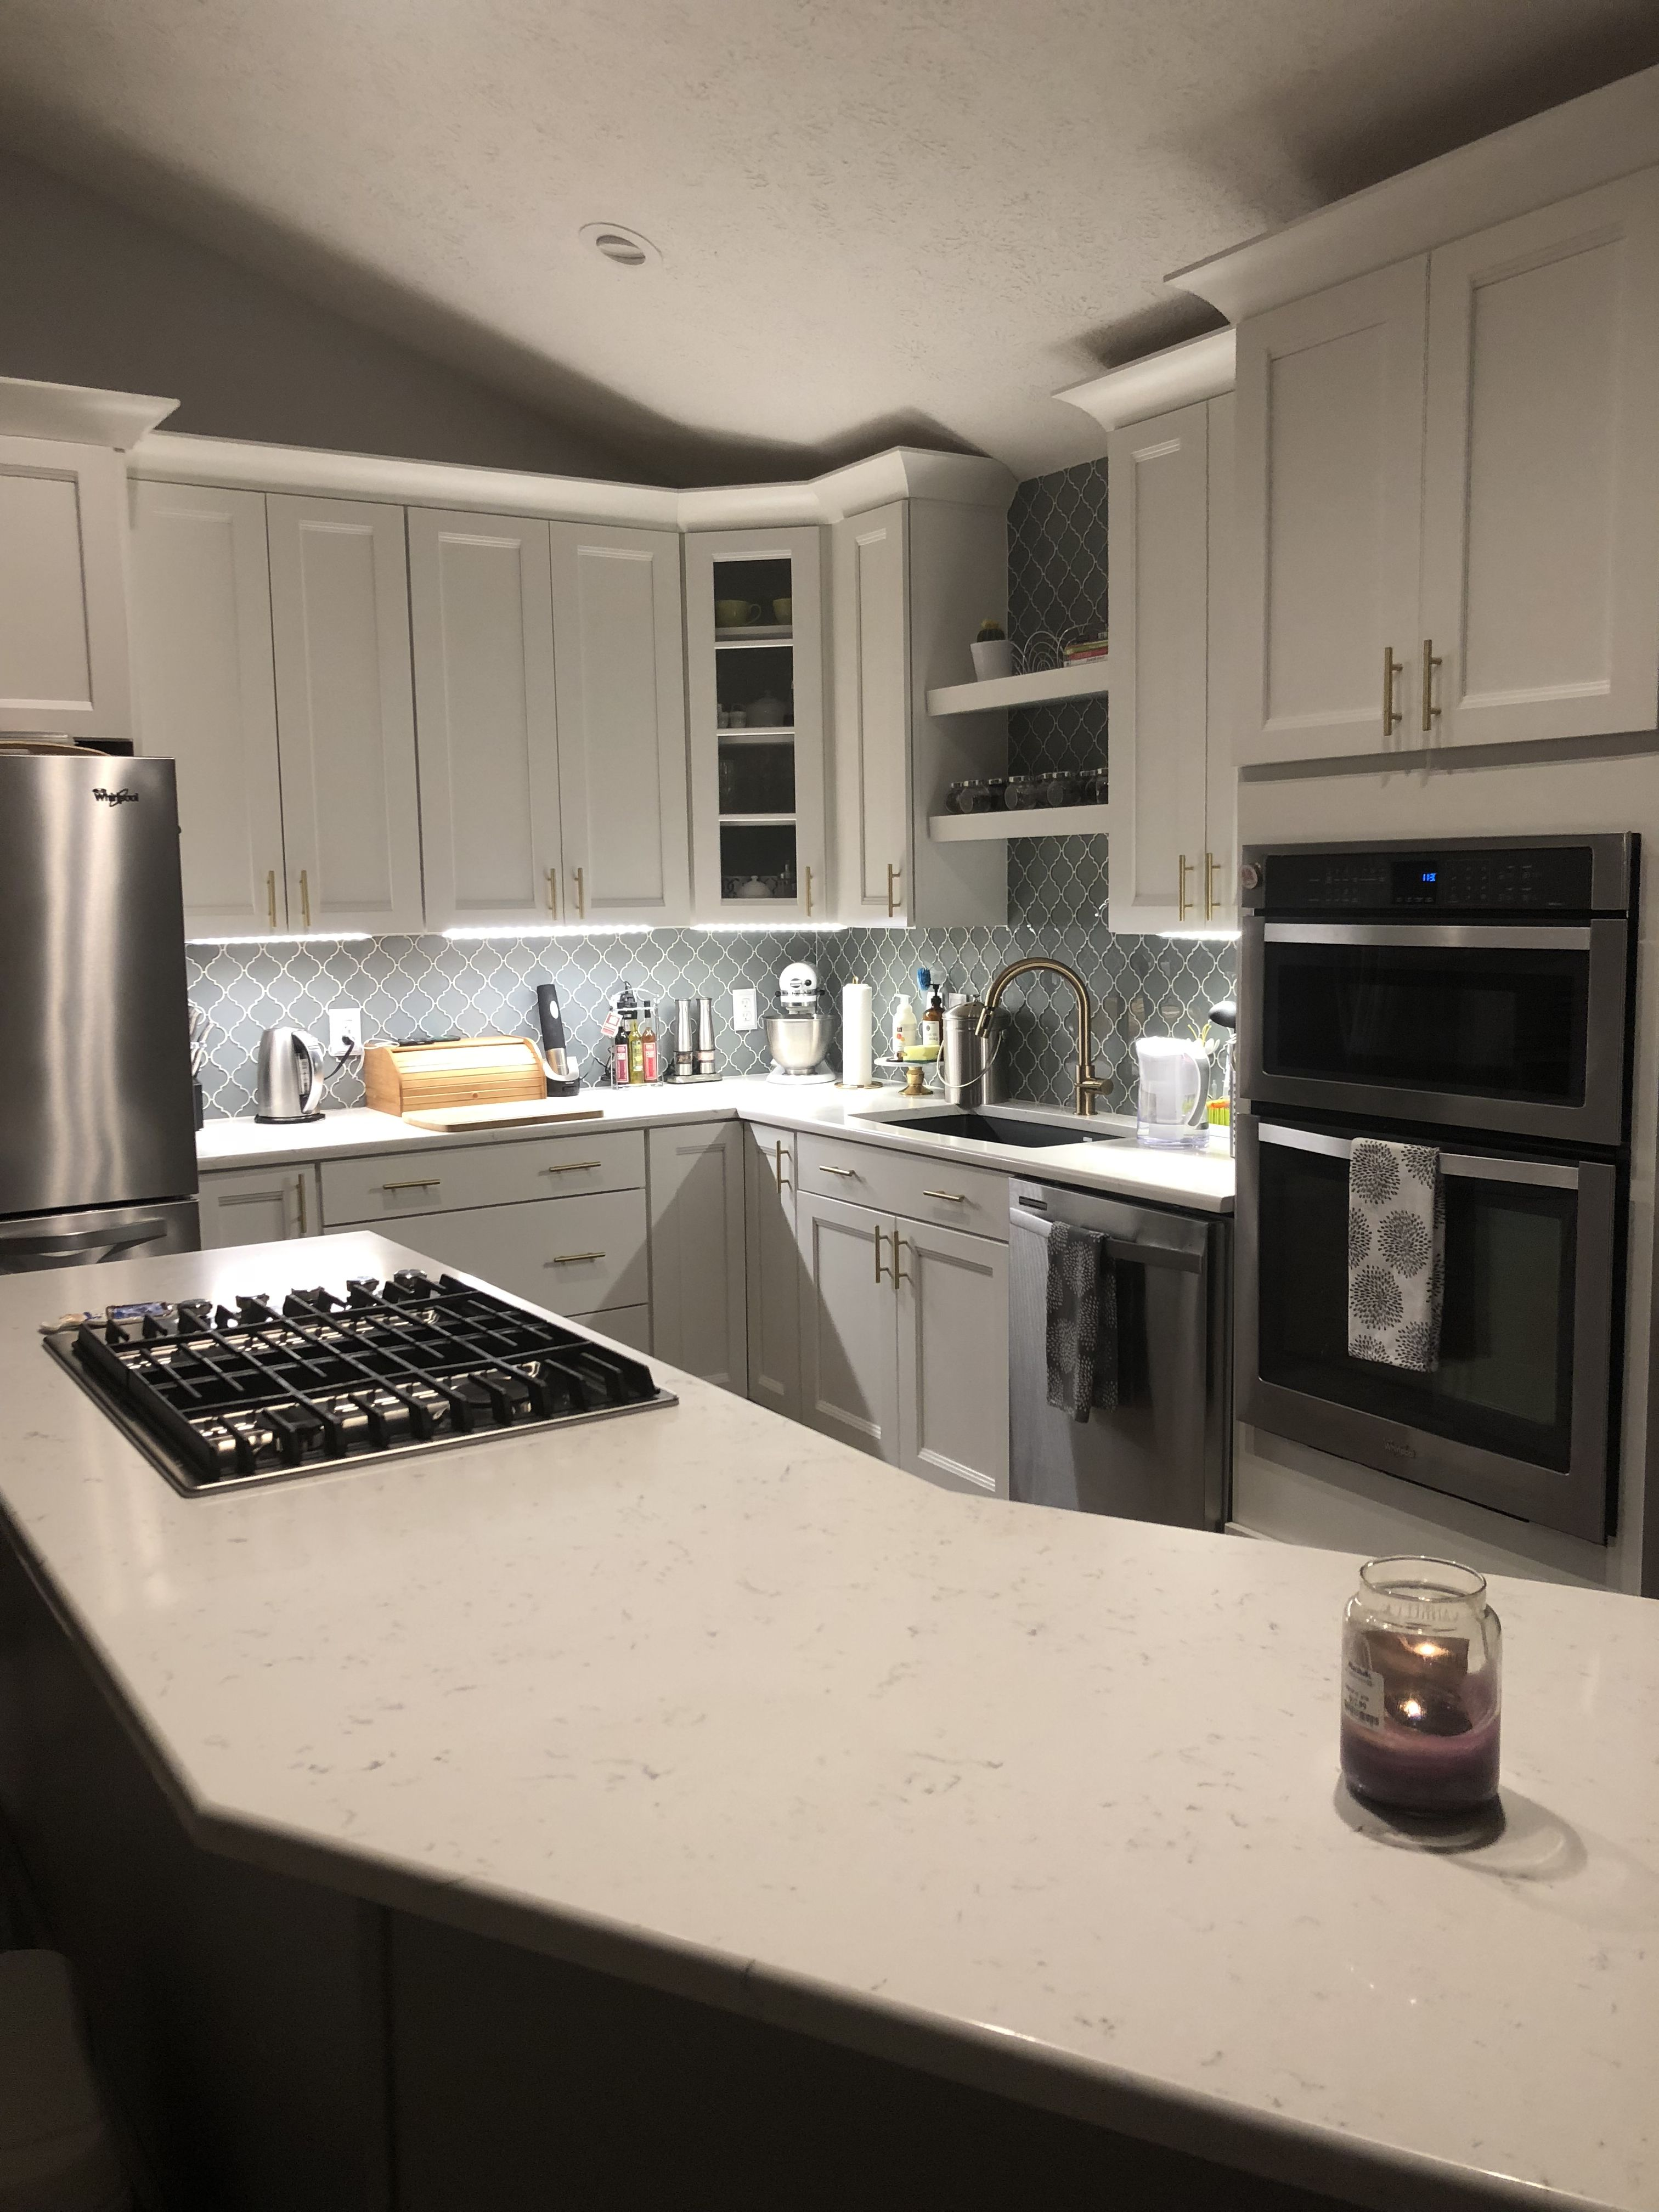 Pin By Madzia On Kuchnia Kitchen Cabinets Home Decor Home